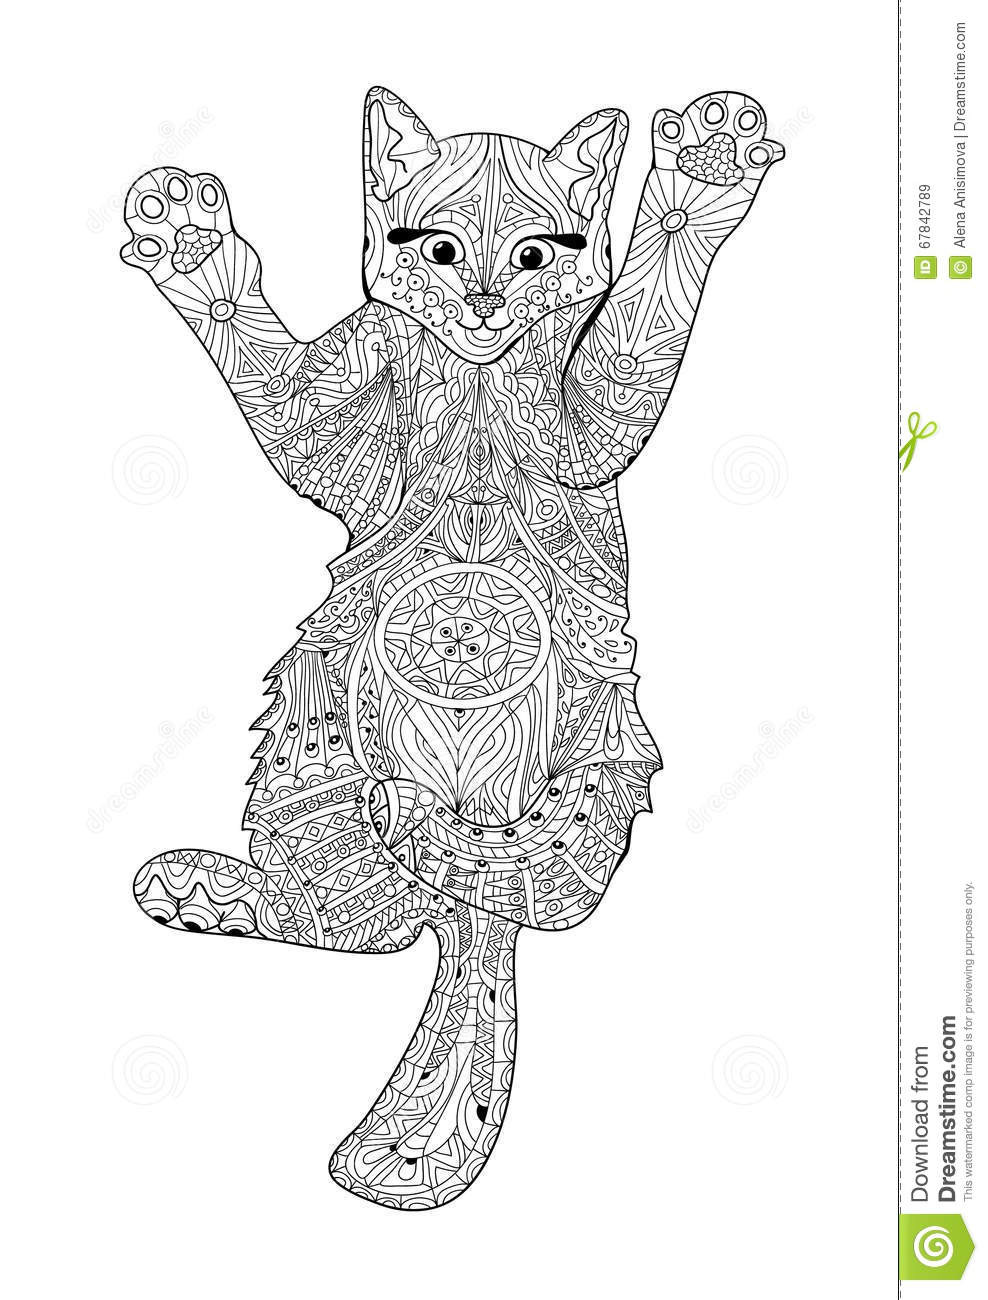 Cats Adult Coloring Book  Funny Kitten Coloring Book For Adults Zentangle Cat